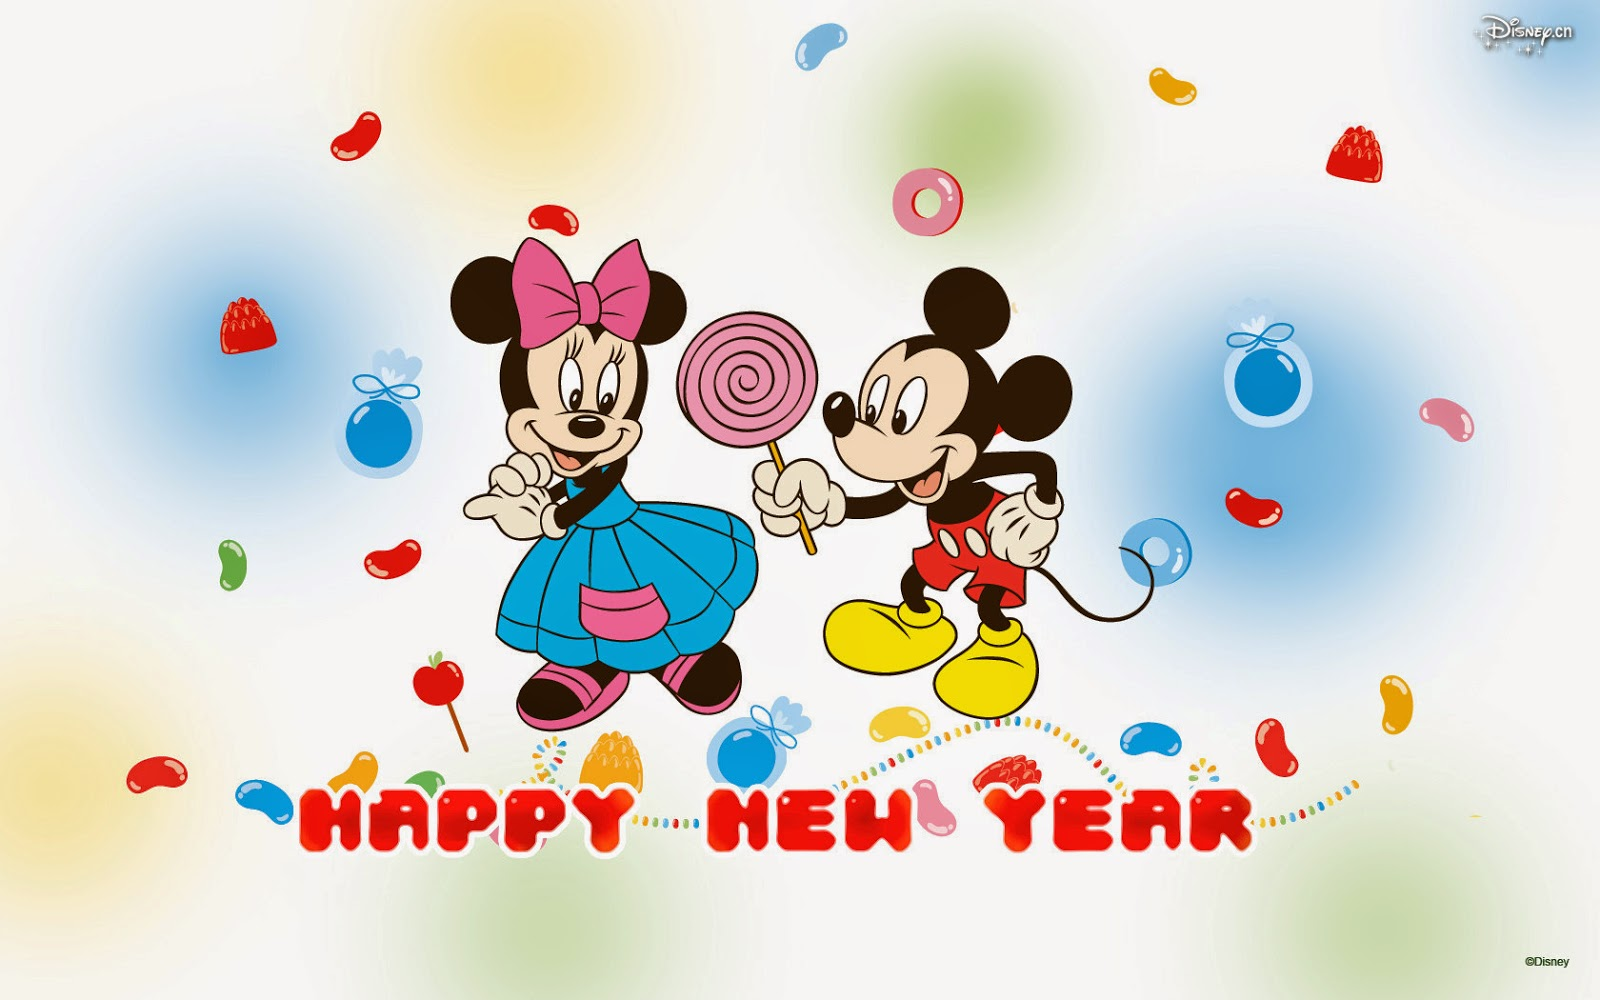 Mickey mouse new years wallpaper wallpapersafari new year cartoon greetings new year cartoon greetings new year cartoon 1600x1000 m4hsunfo